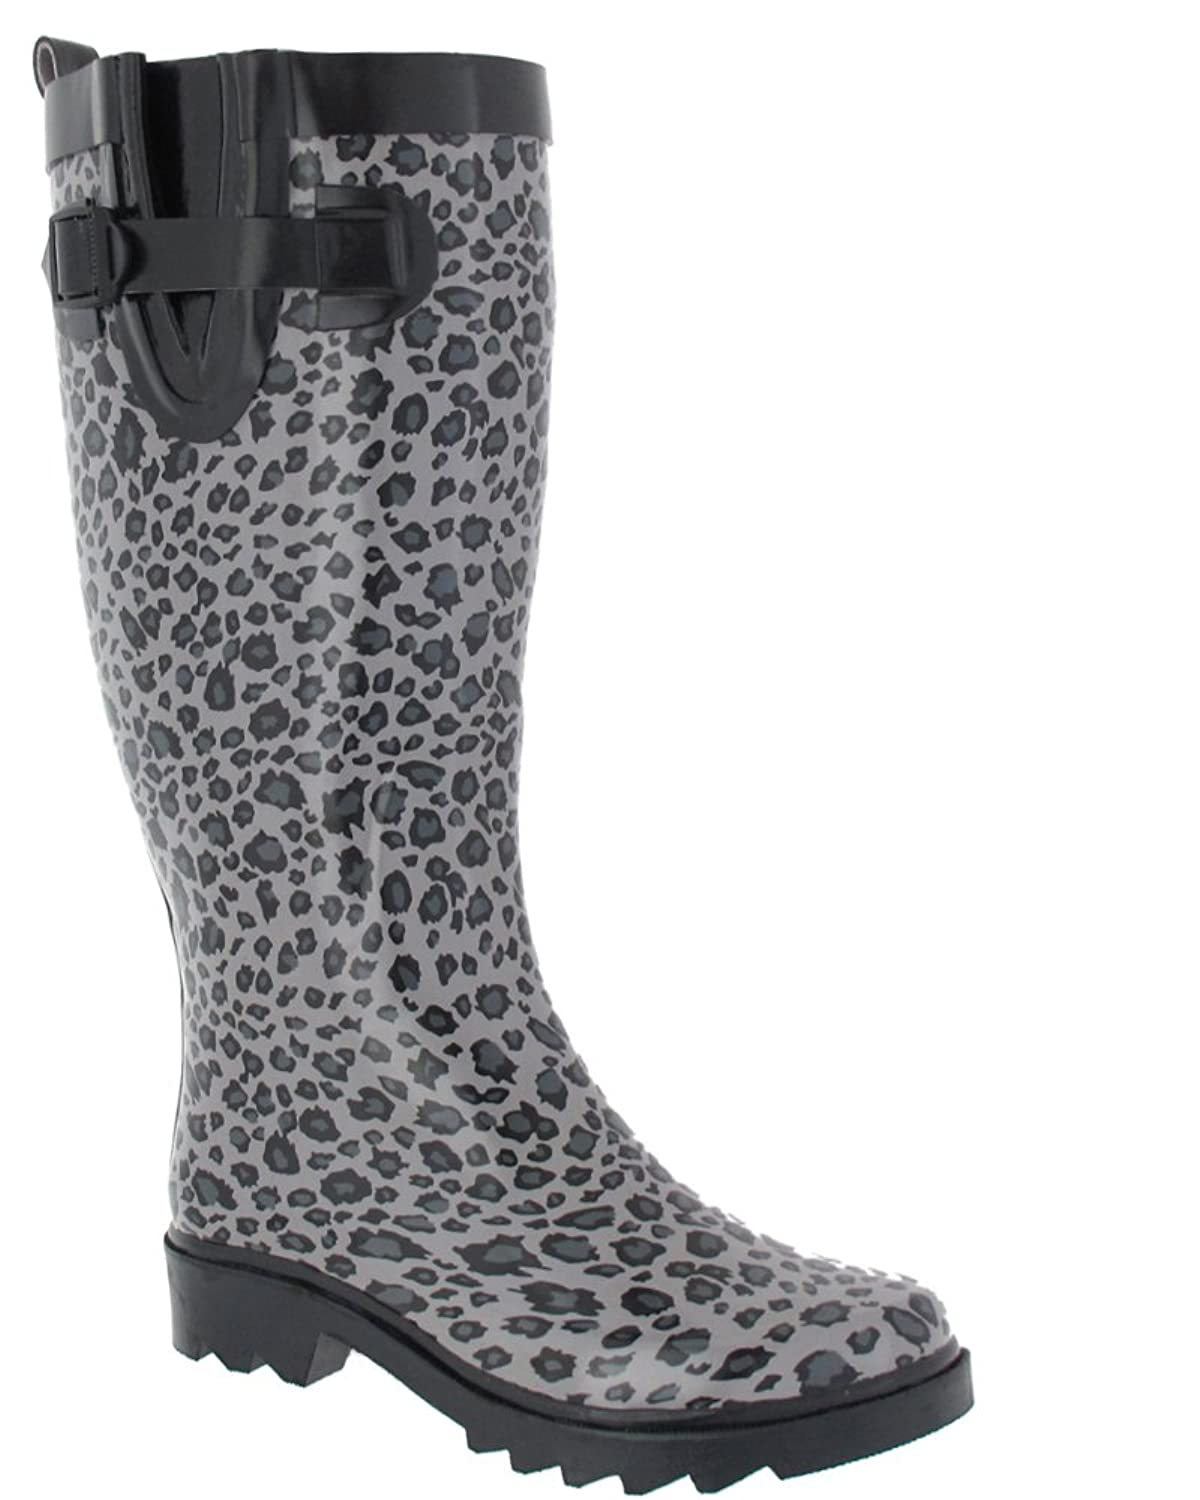 Capelli New York Shiny Baby Leopard Printed Ladies Tall Sporty Rubber Rain  Boot Black Combo Combo